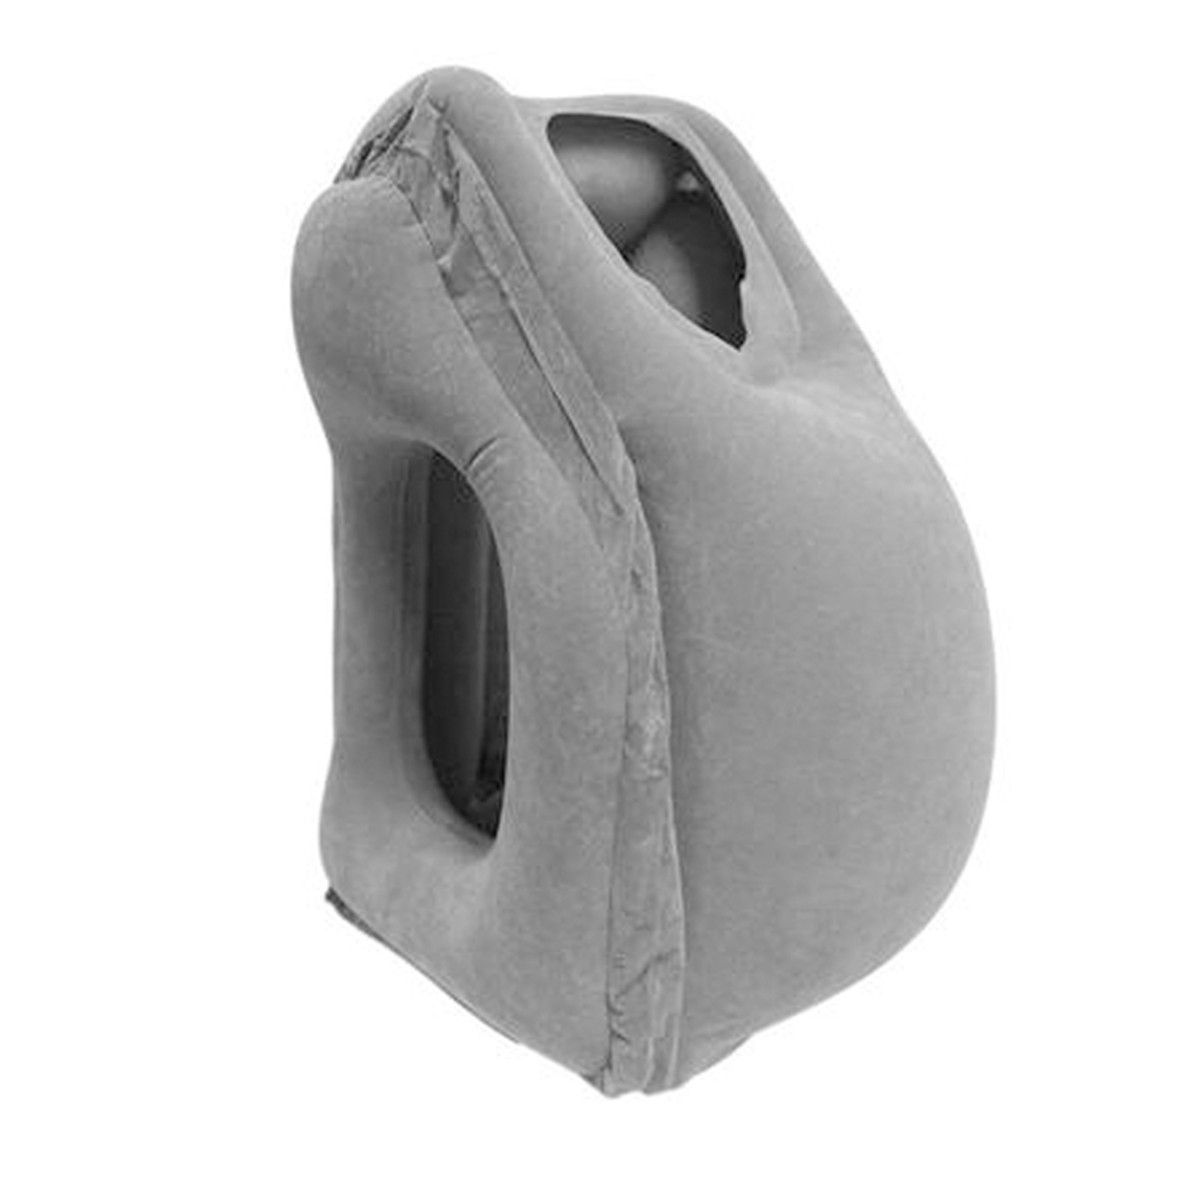 Inflatable Air Filled Travel Airplane Neck Pillow Cushion Support + Carrying Bag